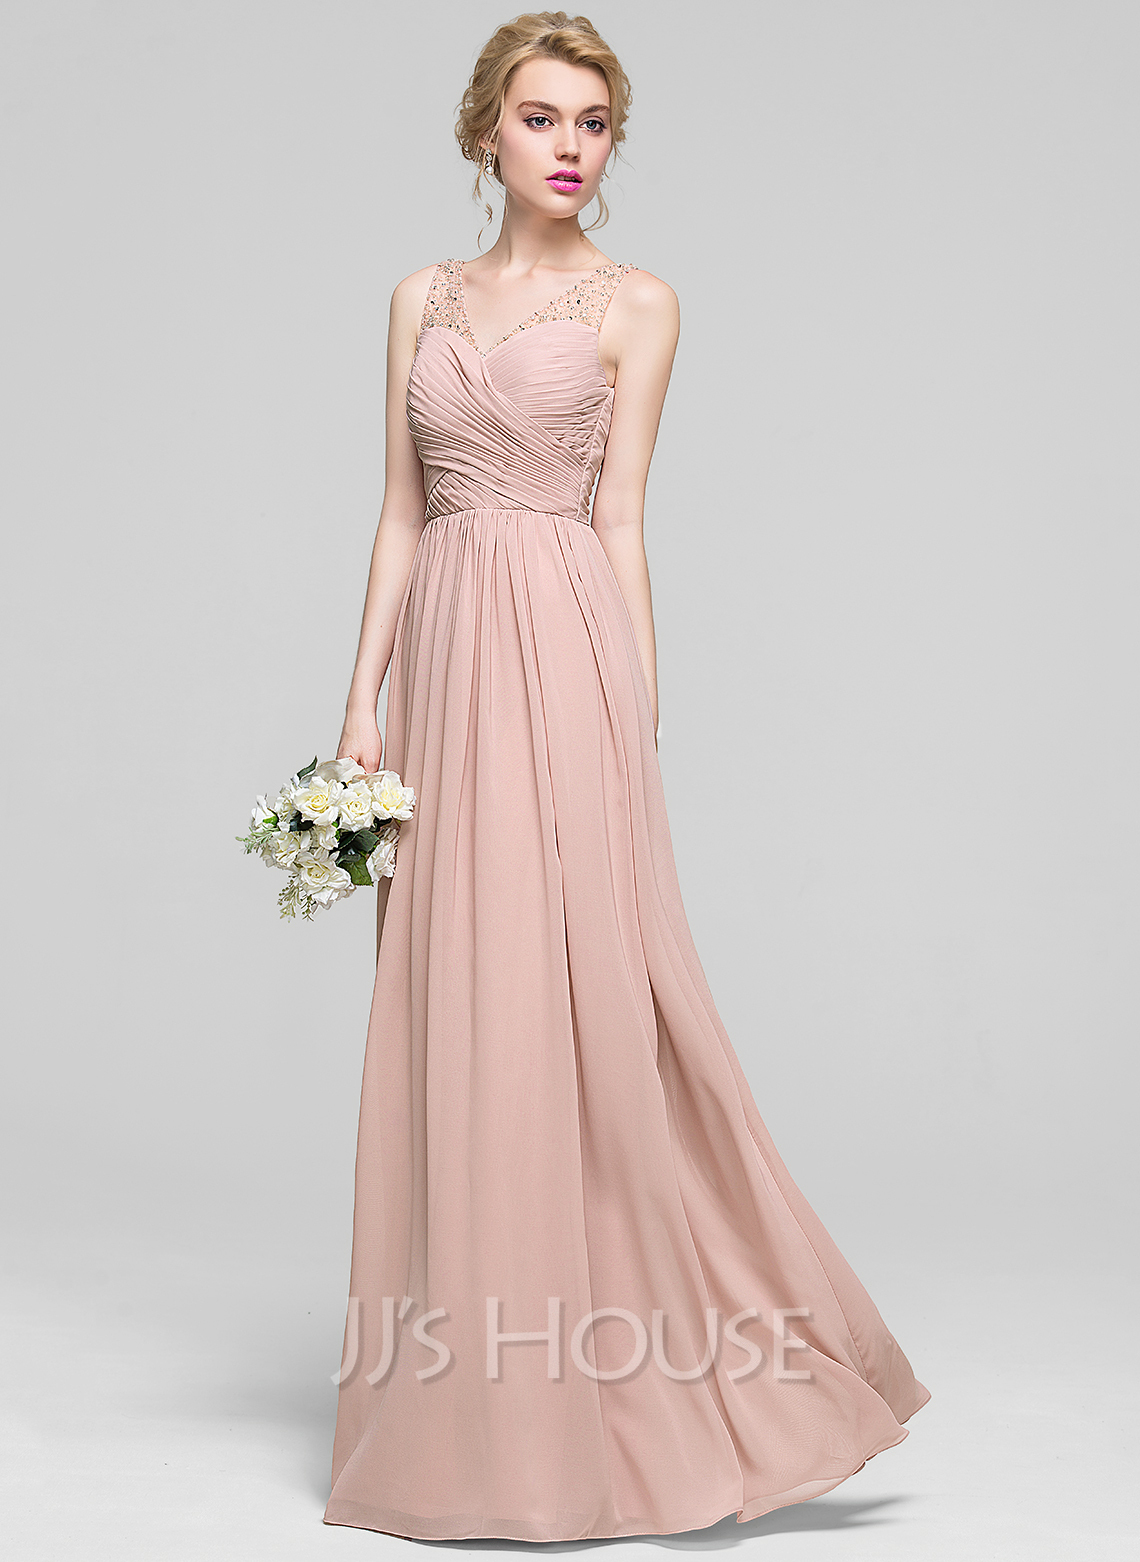 A Line Princess V Neck Floor Length Chiffon Bridesmaid Dress With Ruffle Beading Sequins